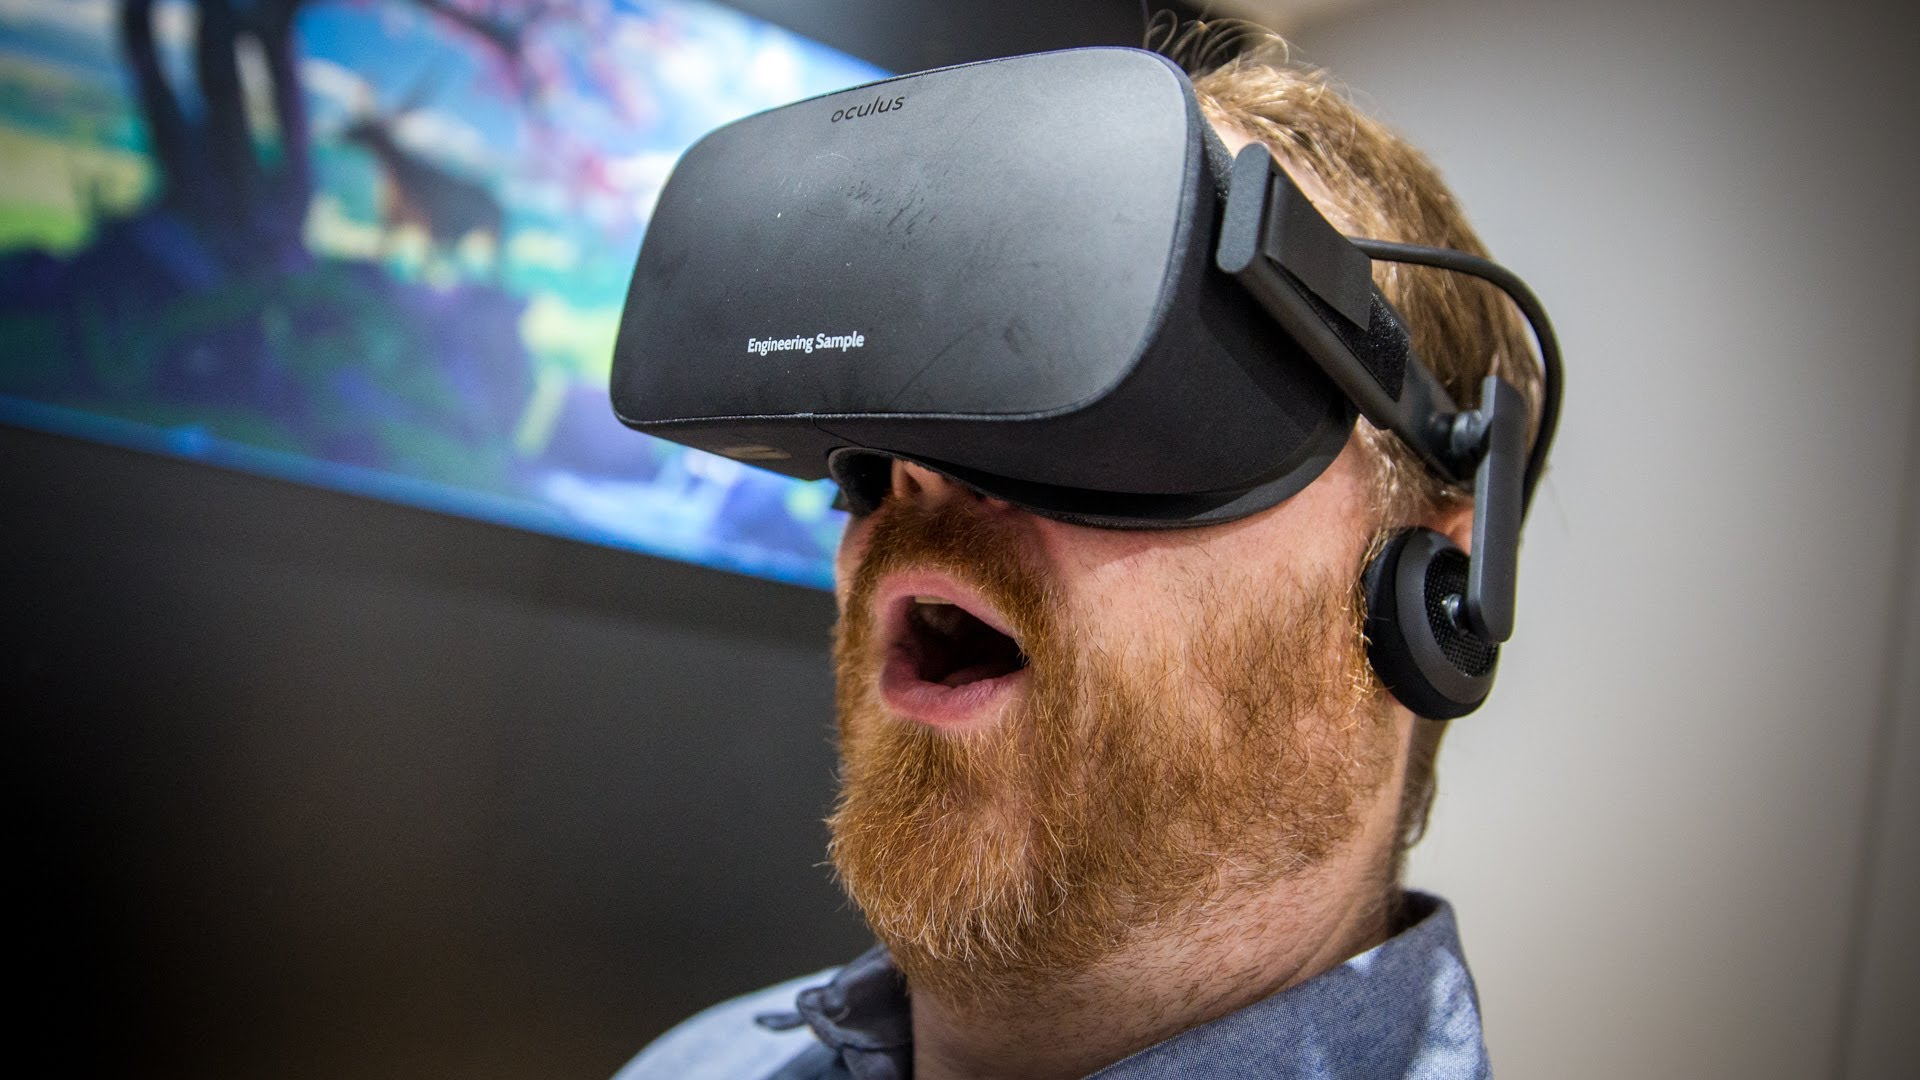 Reality is Virtual: Marketing Digitally in 2016 and Beyond